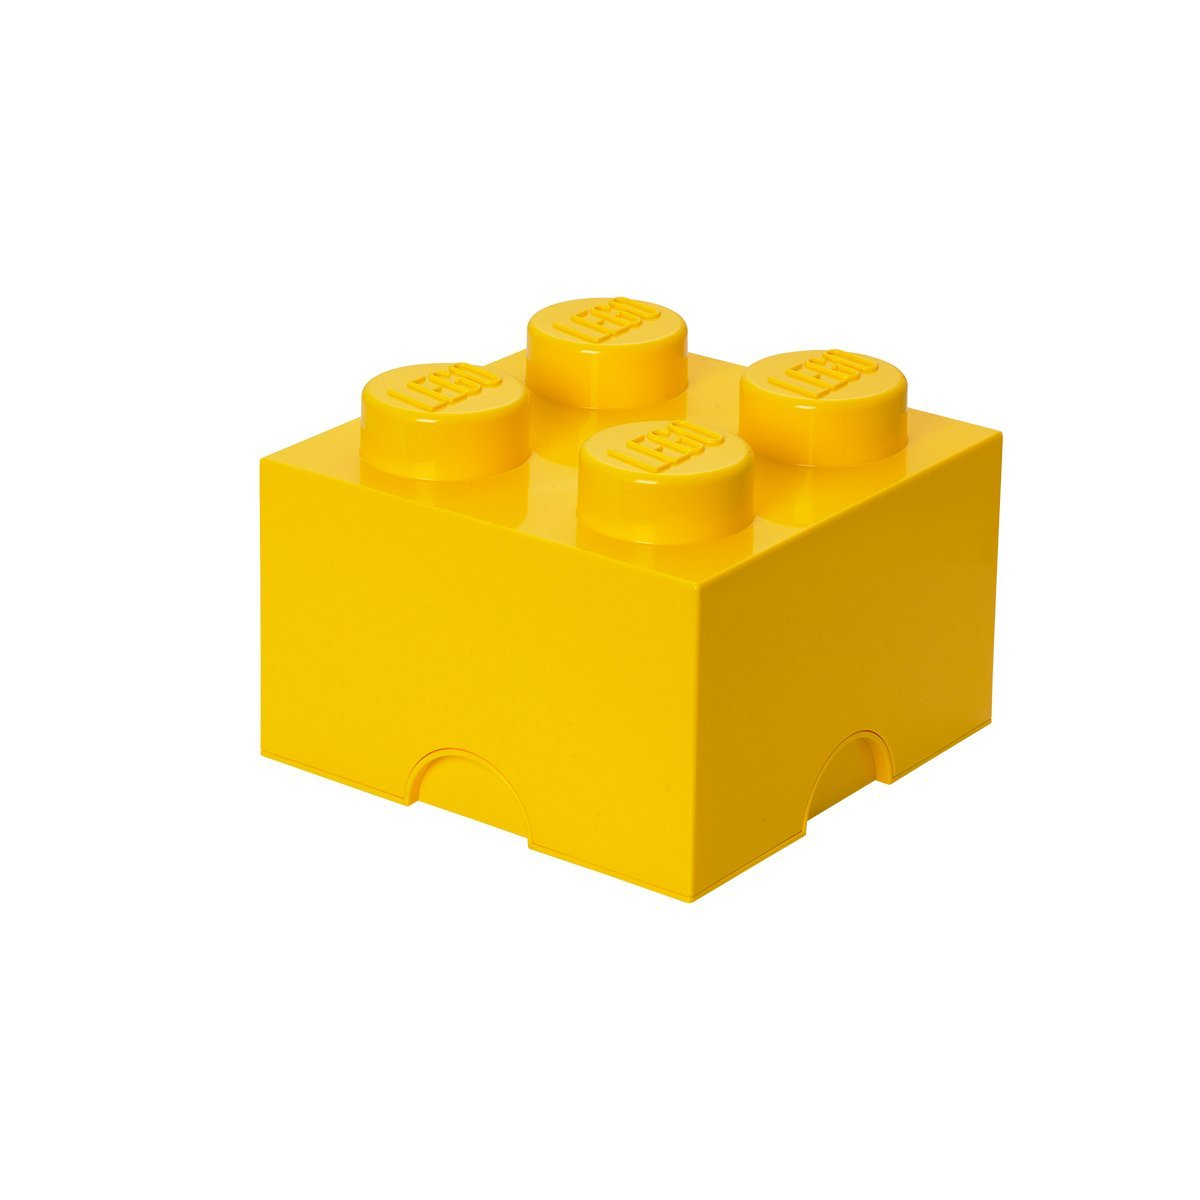 1200x1200 Lego Brick 4 Knobs Stackable Storage Box, Yellow, 5.7 Litre